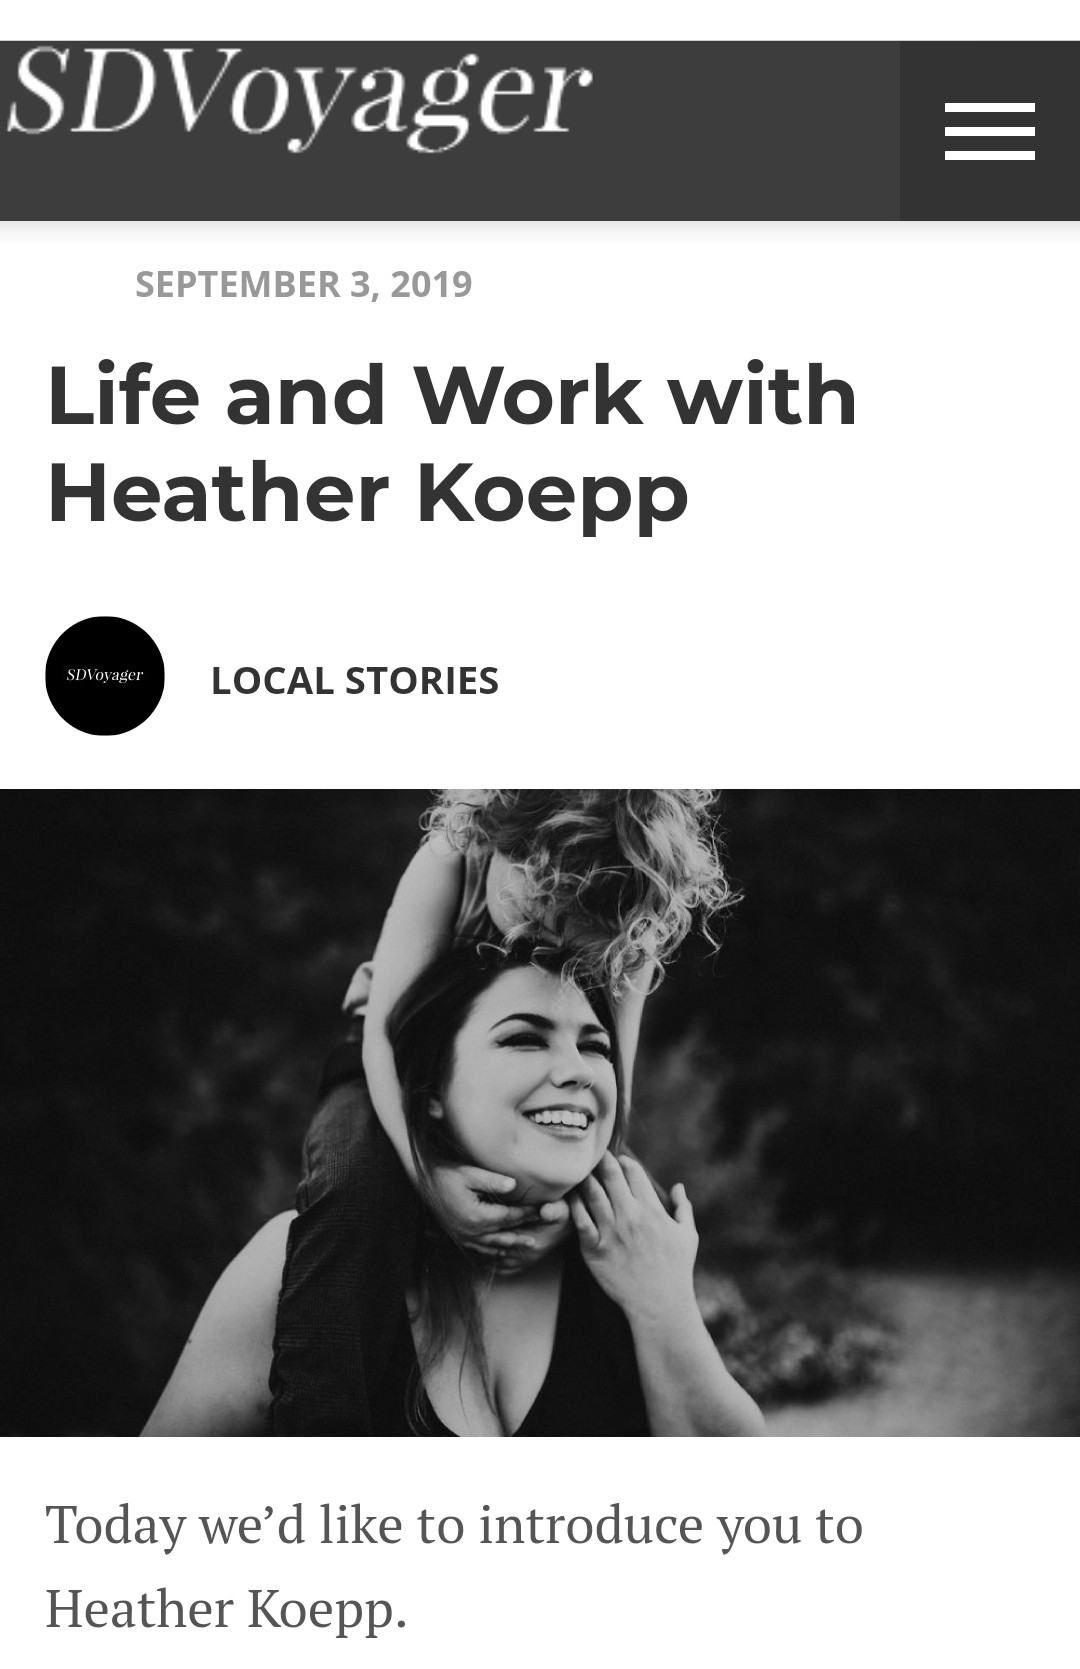 Read Heather's Interview with SD VOYAGER to learn more about Her LIFE AND WORK  - http://sdvoyager.com/interview/life-work-heather-koepp/?fbclid=IwAR1g77YYfZ9H-9kFjyEVQnV4PNoZFwGqp6sNiRsG261bPEcfKqErEISpe7U